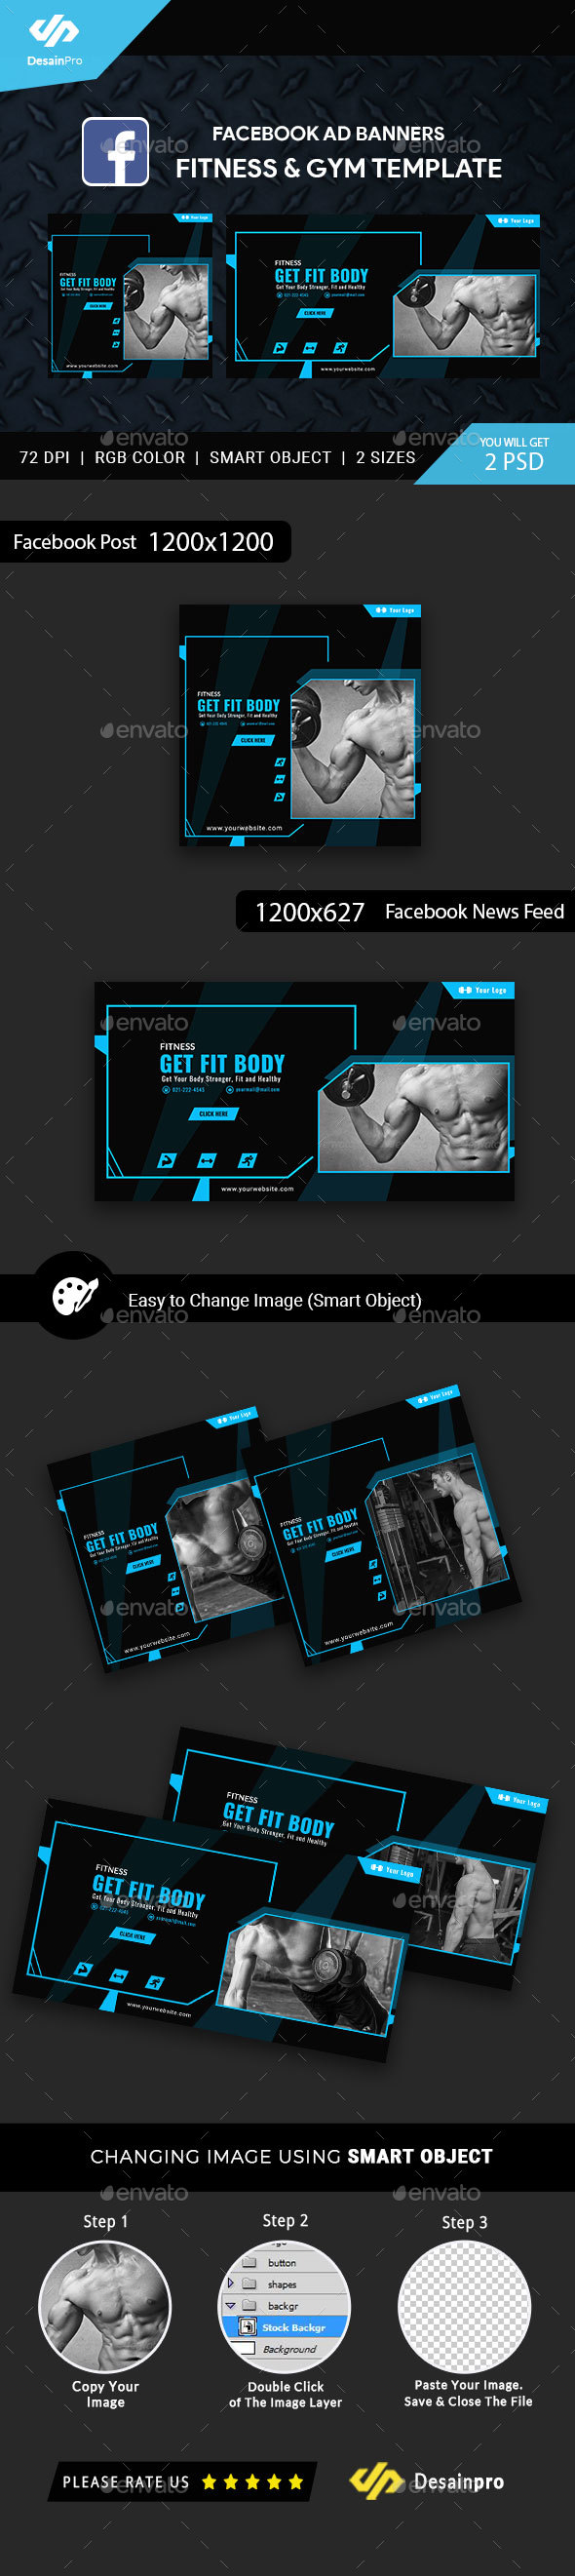 Fitness and Gym Facebook Ad Banners - AR - Social Media Web Elements